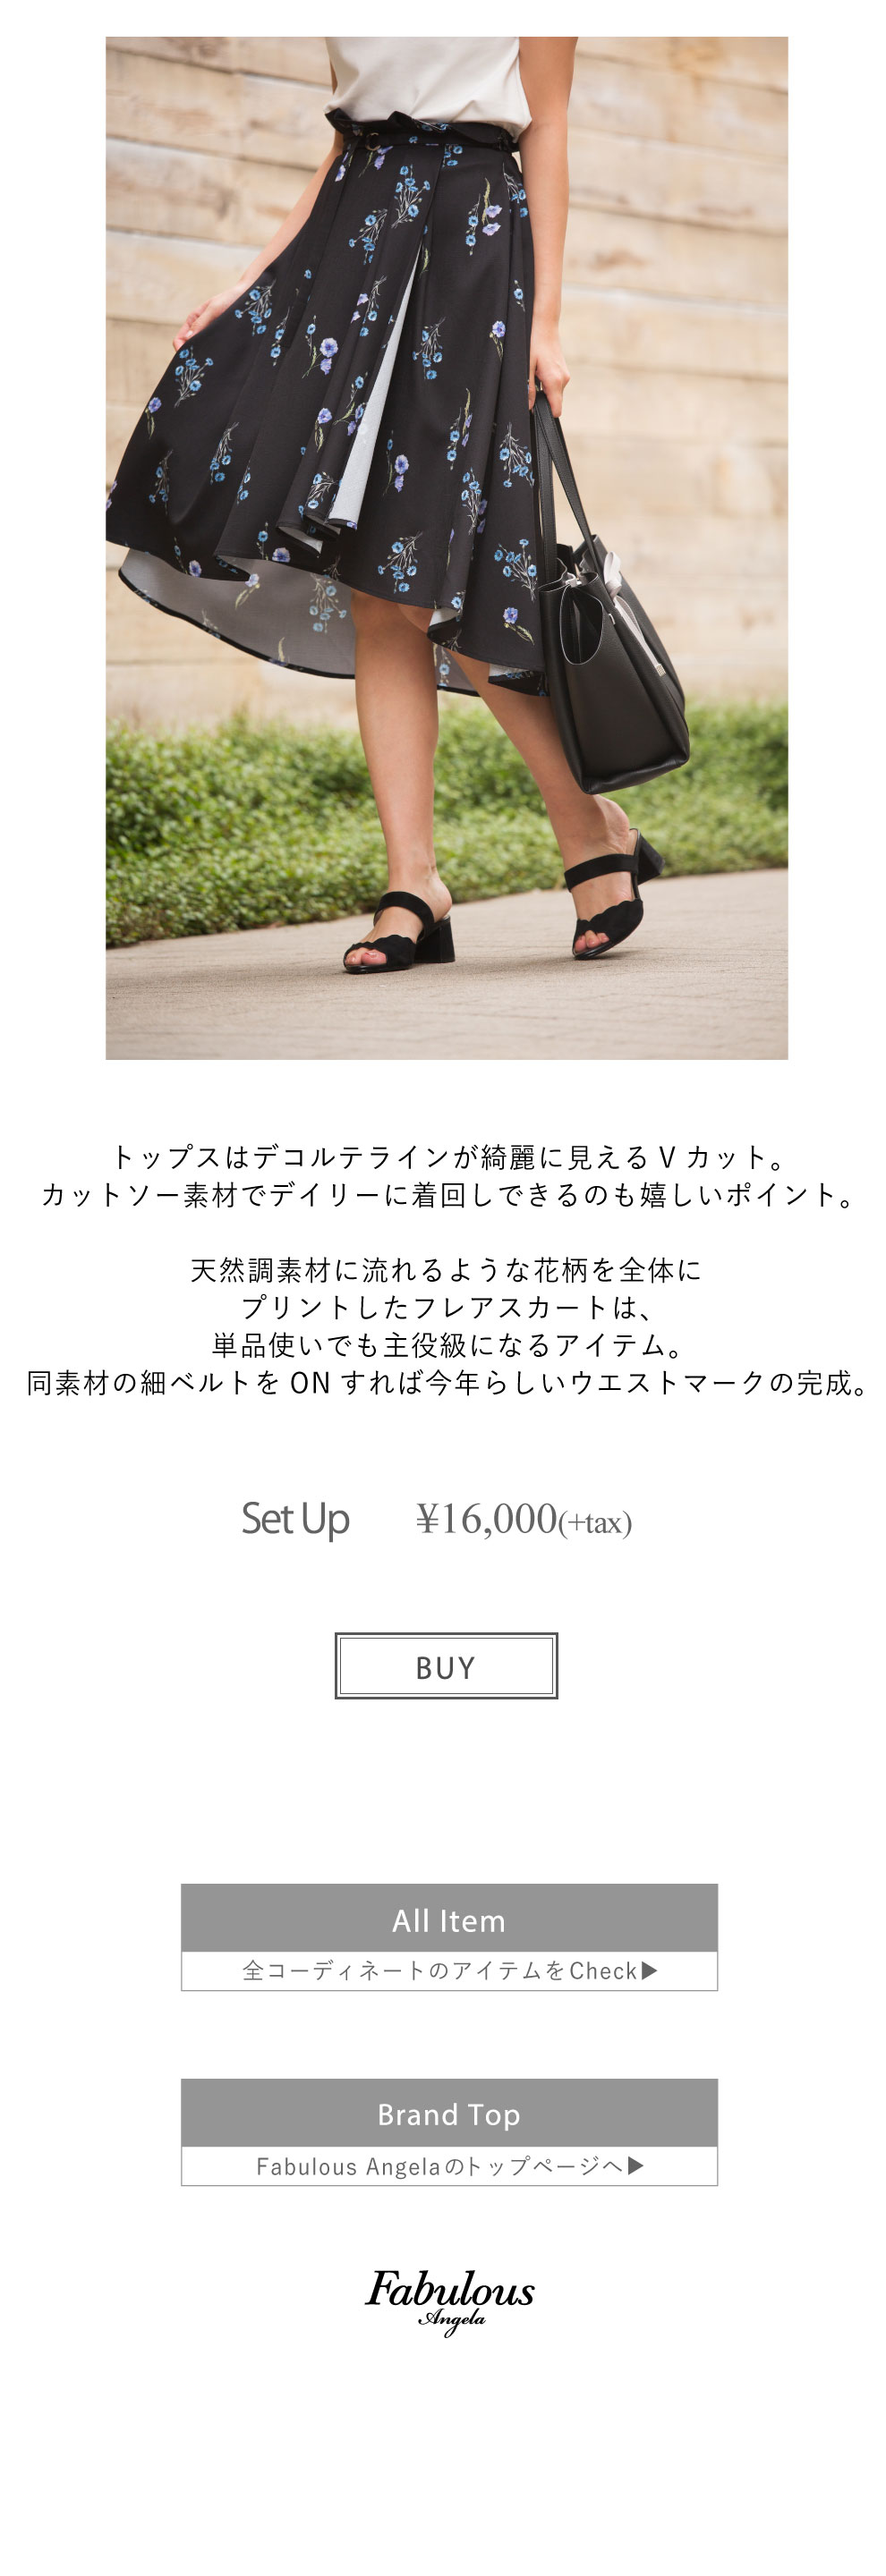 WEB STORE LIMITED COLOR ITEM